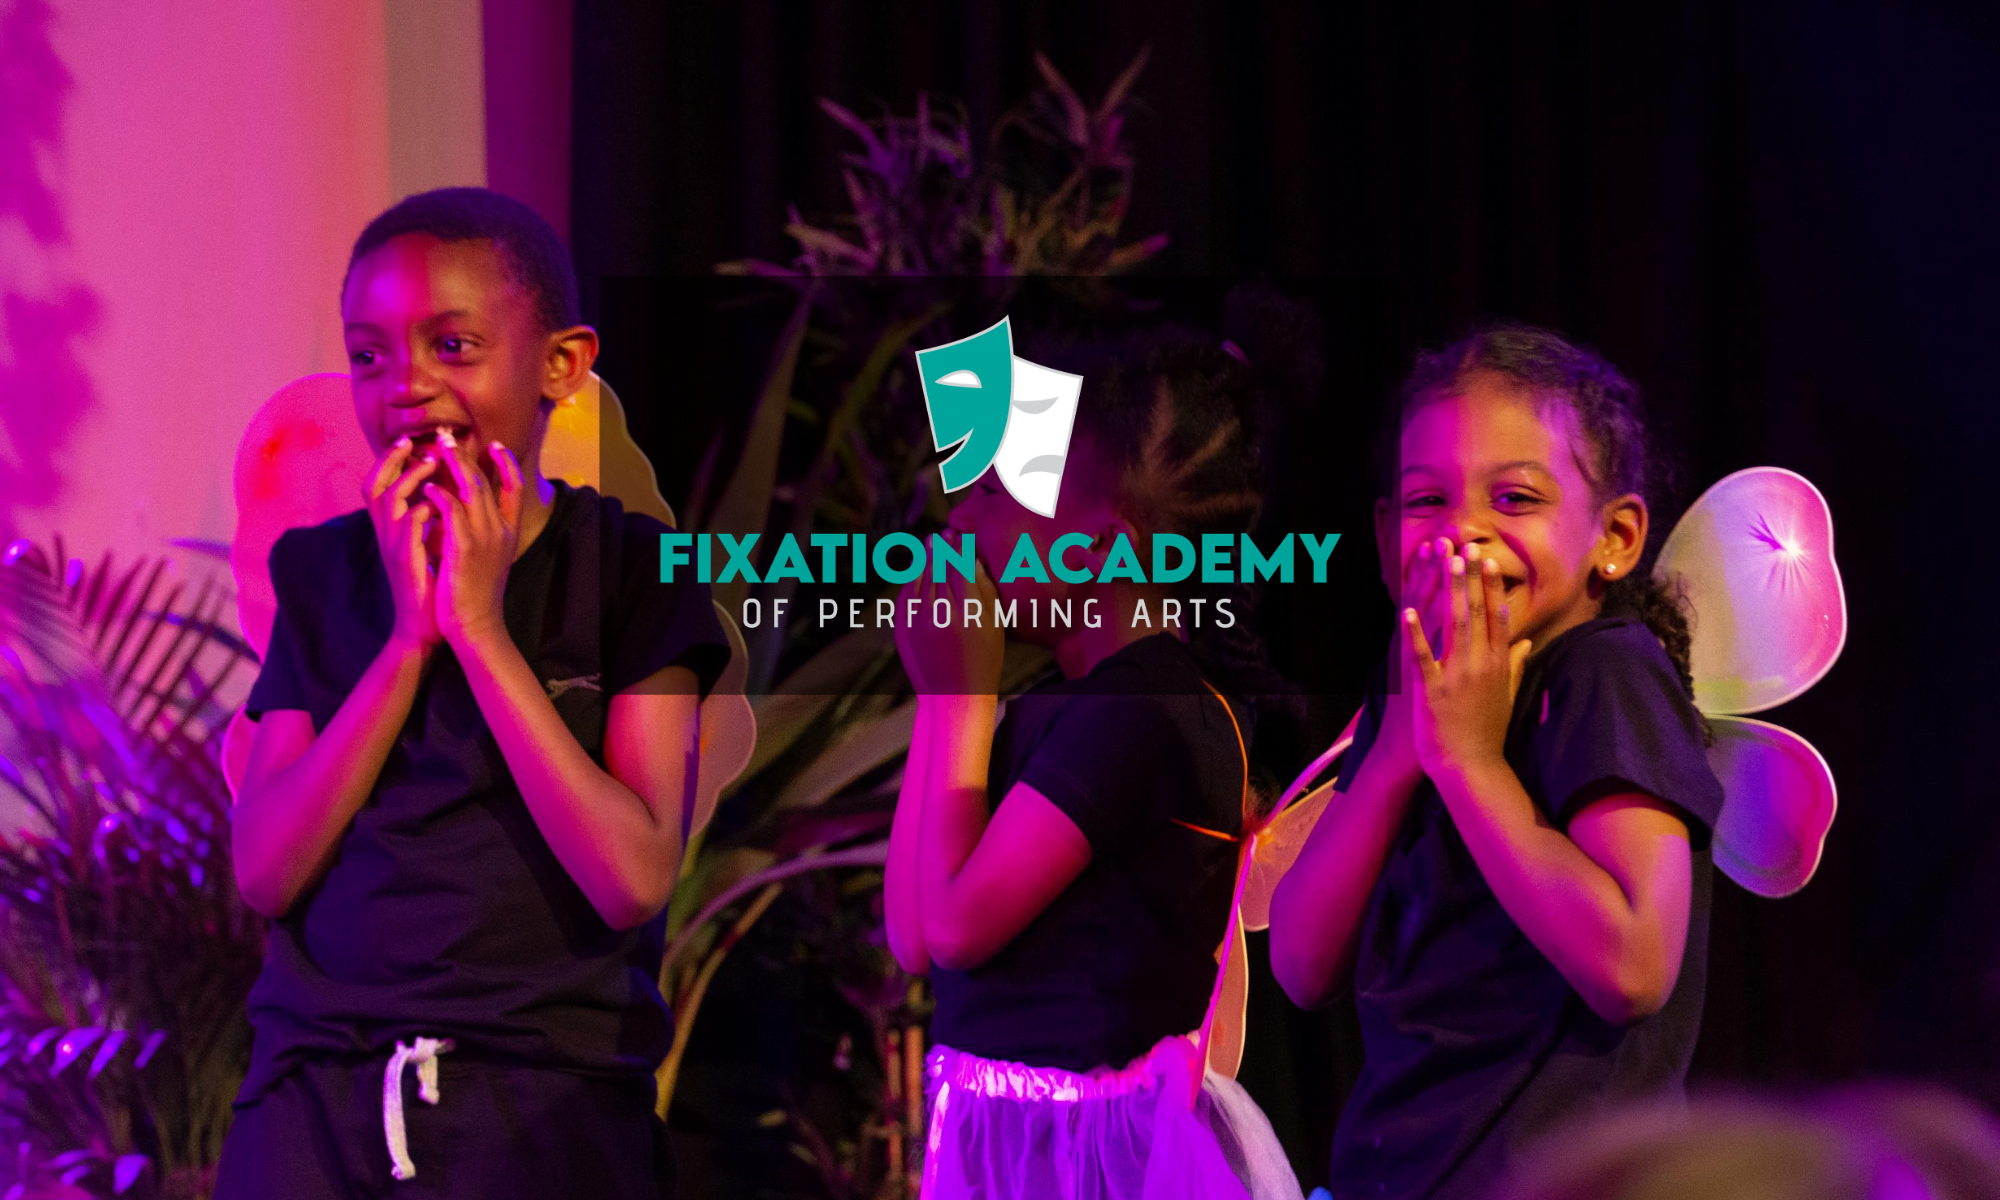 Fixation Academy of performing Arts